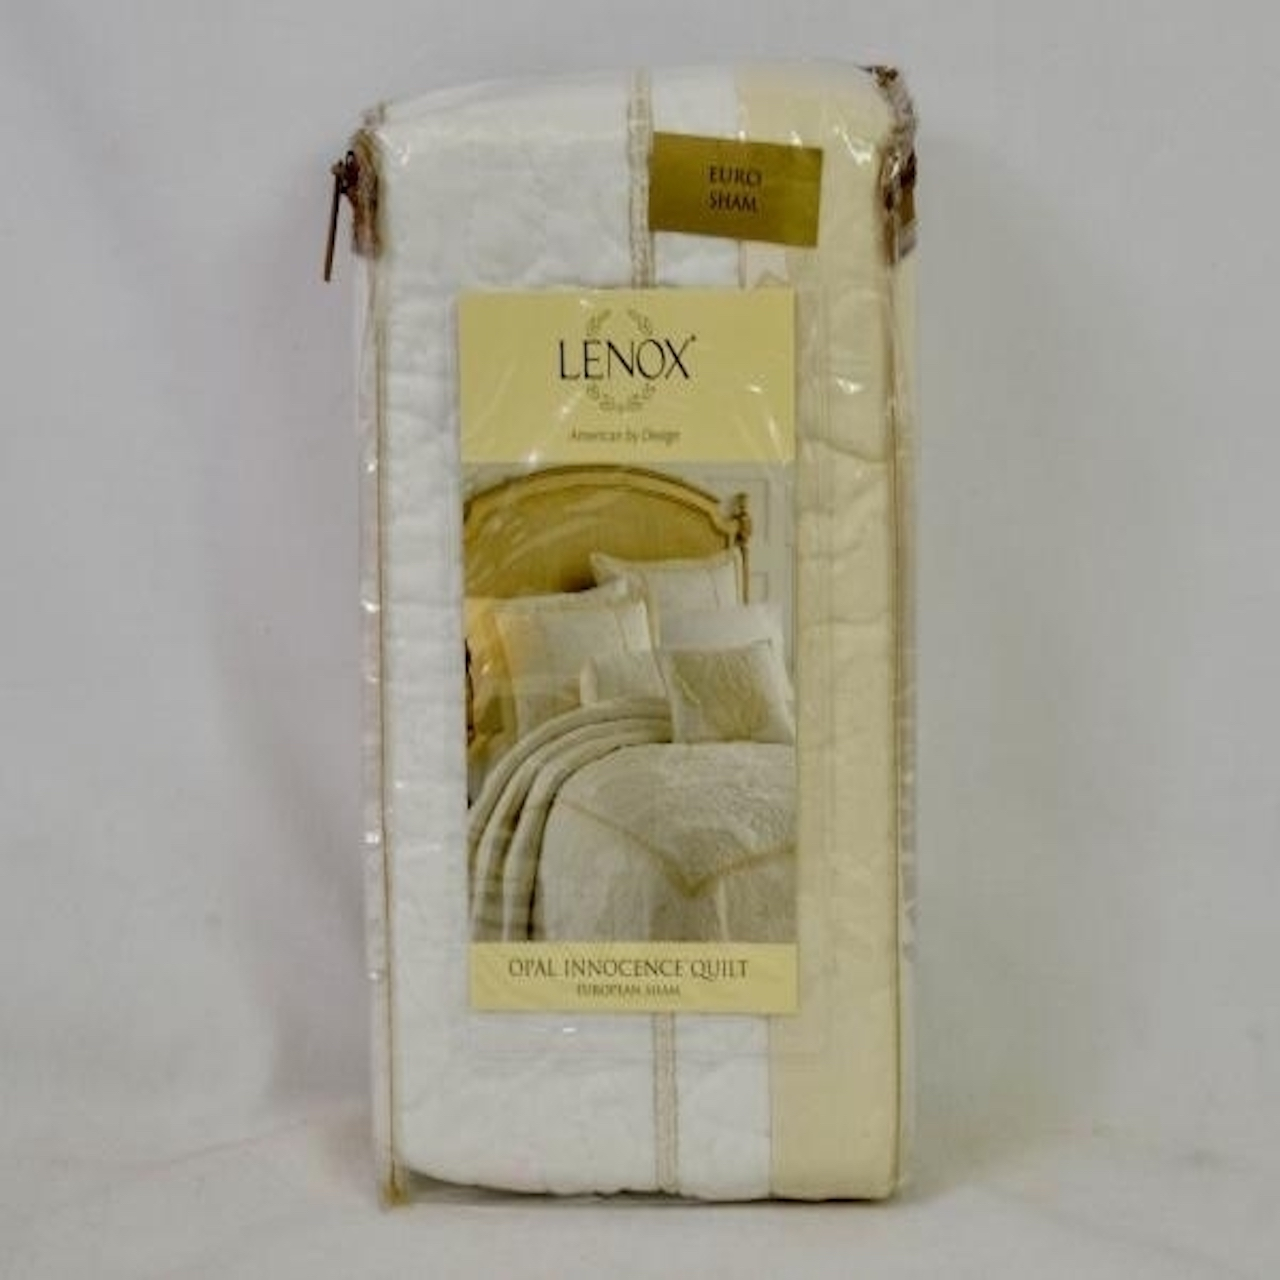 Lenox Opal Innocence Quilted European Sham in White - image 1 of 1